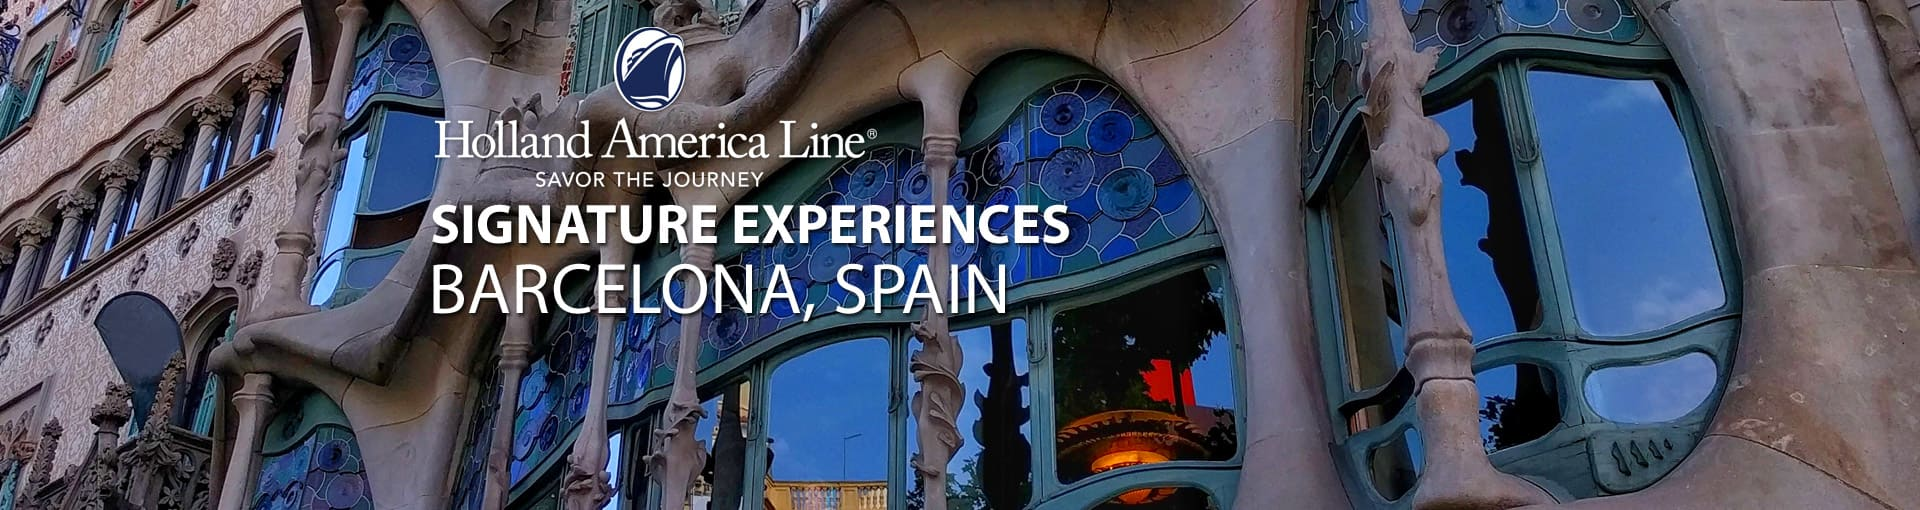 Holland America Signature Experiences - Barcelona, Spain